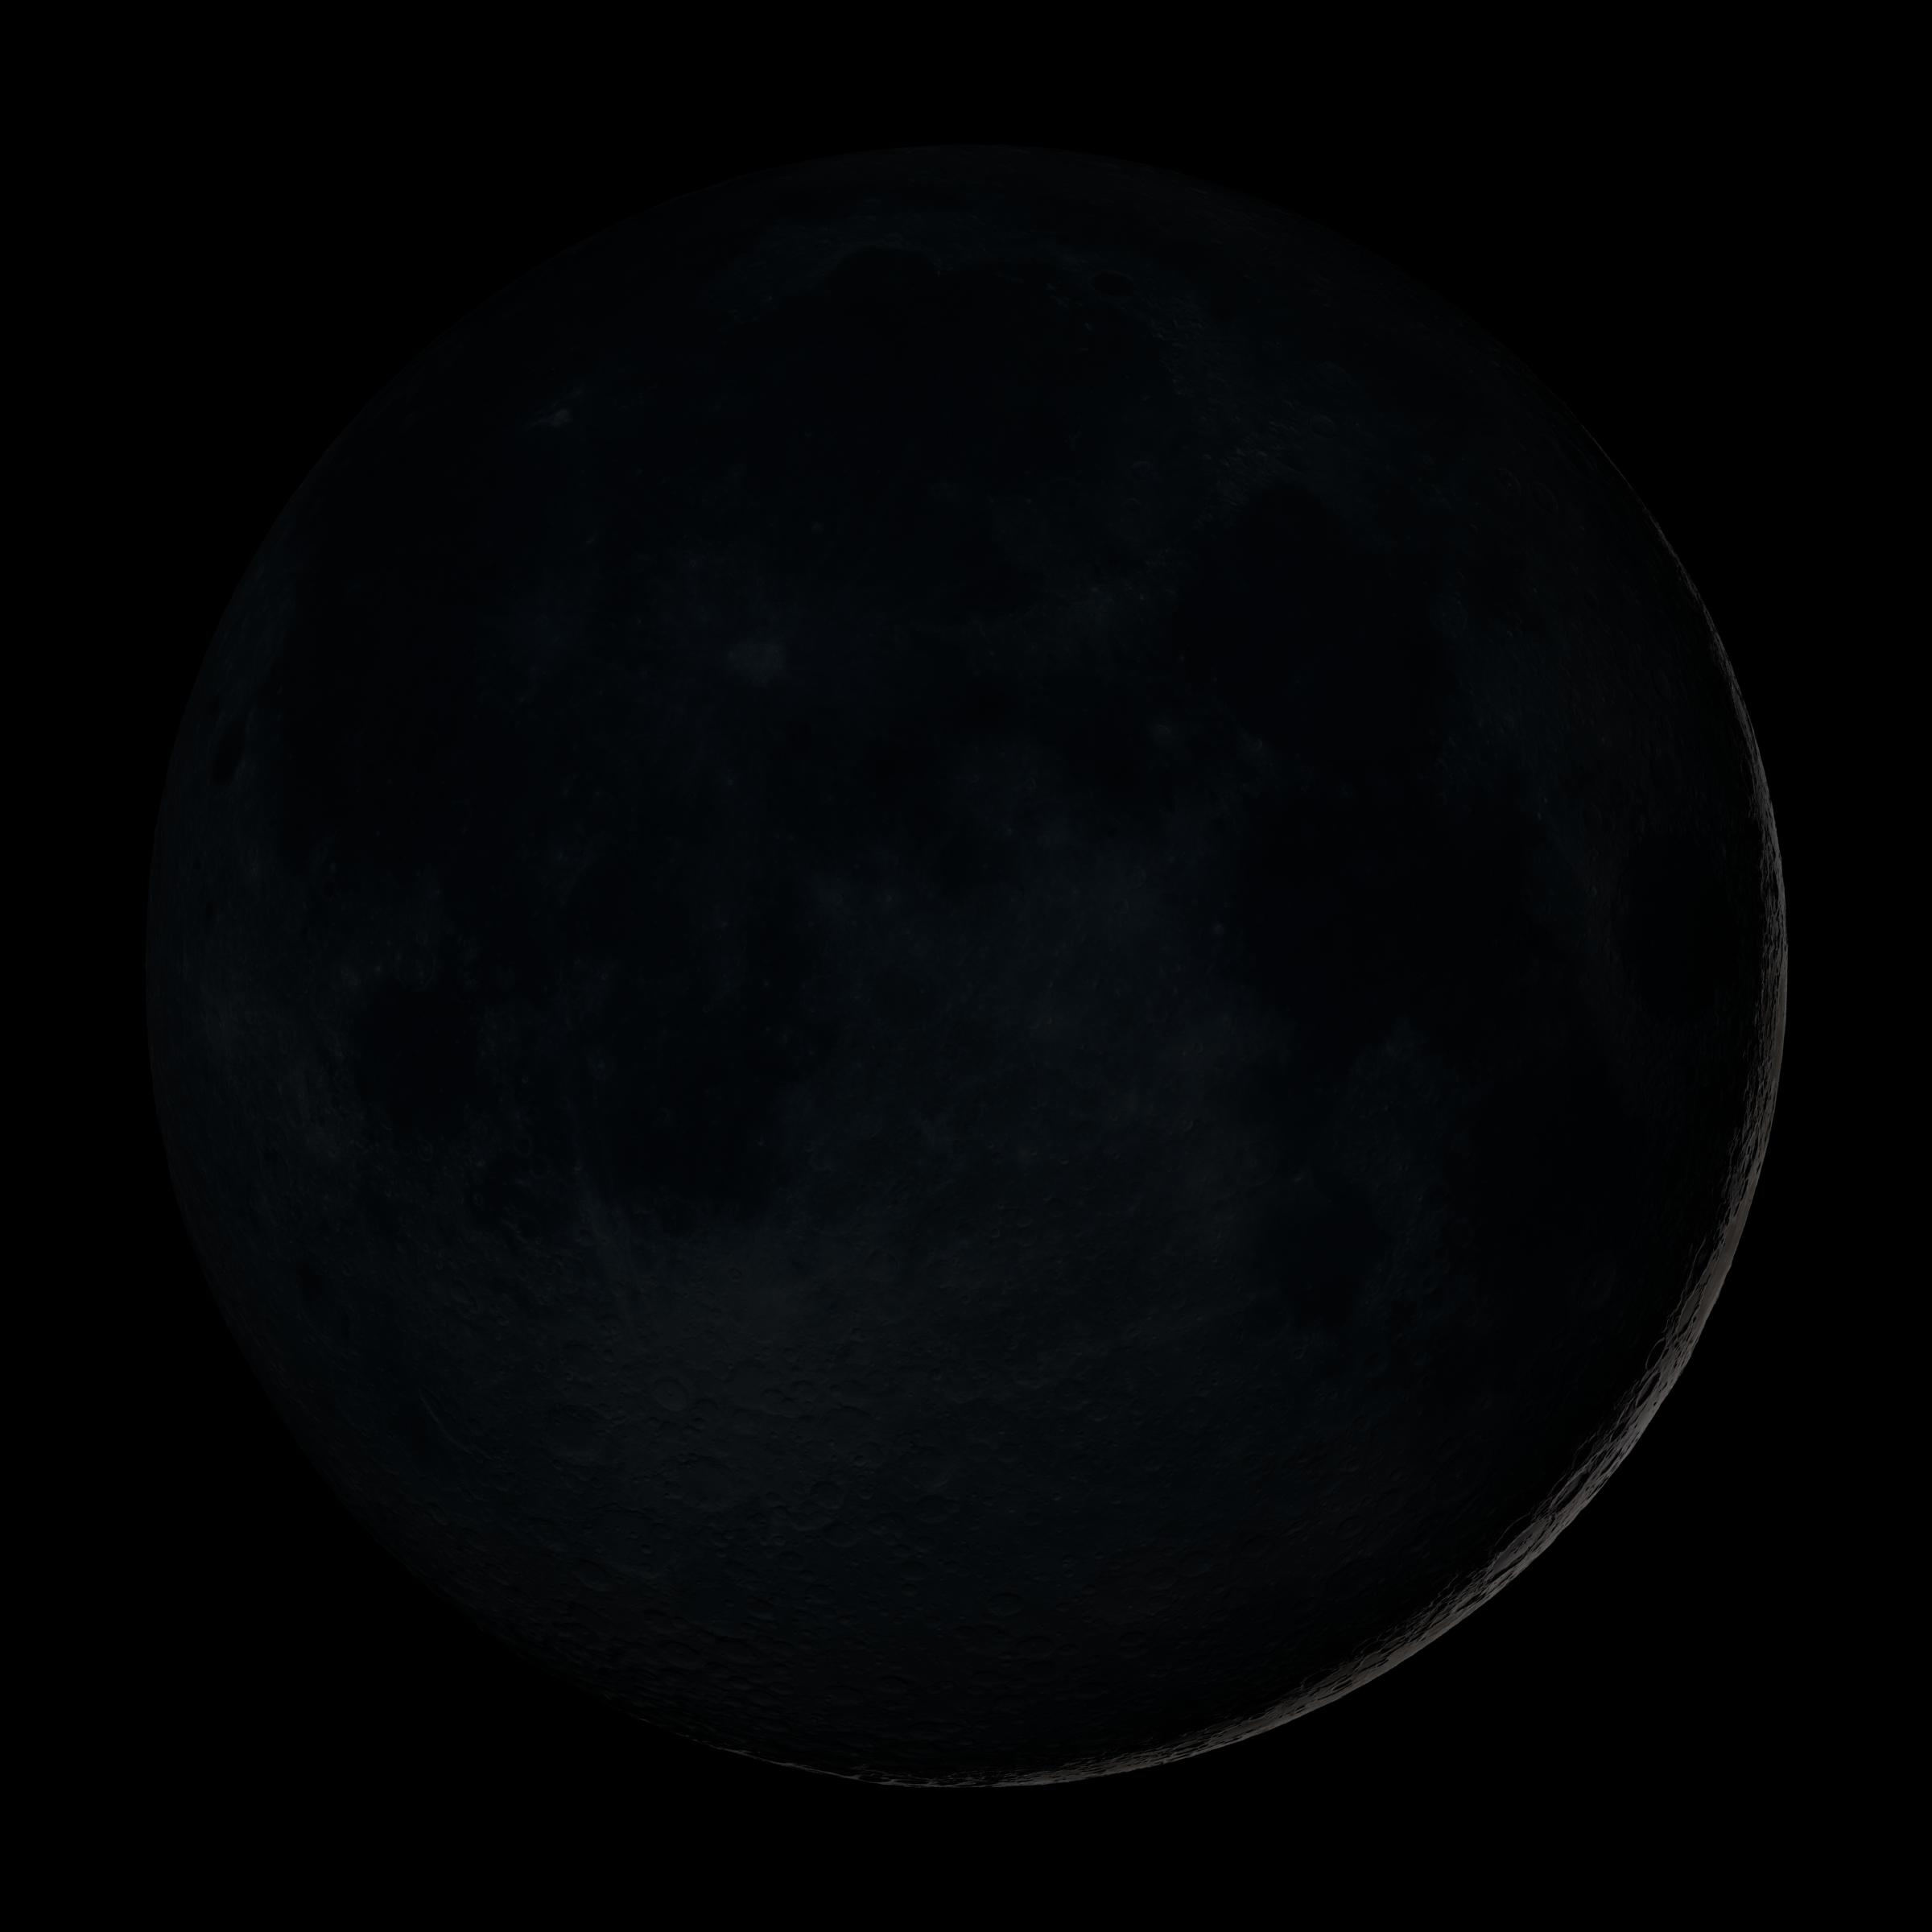 New Moon - Image Via Wikipedia - A thin, thin sliver of silver along the edge of the dark face of the moon.